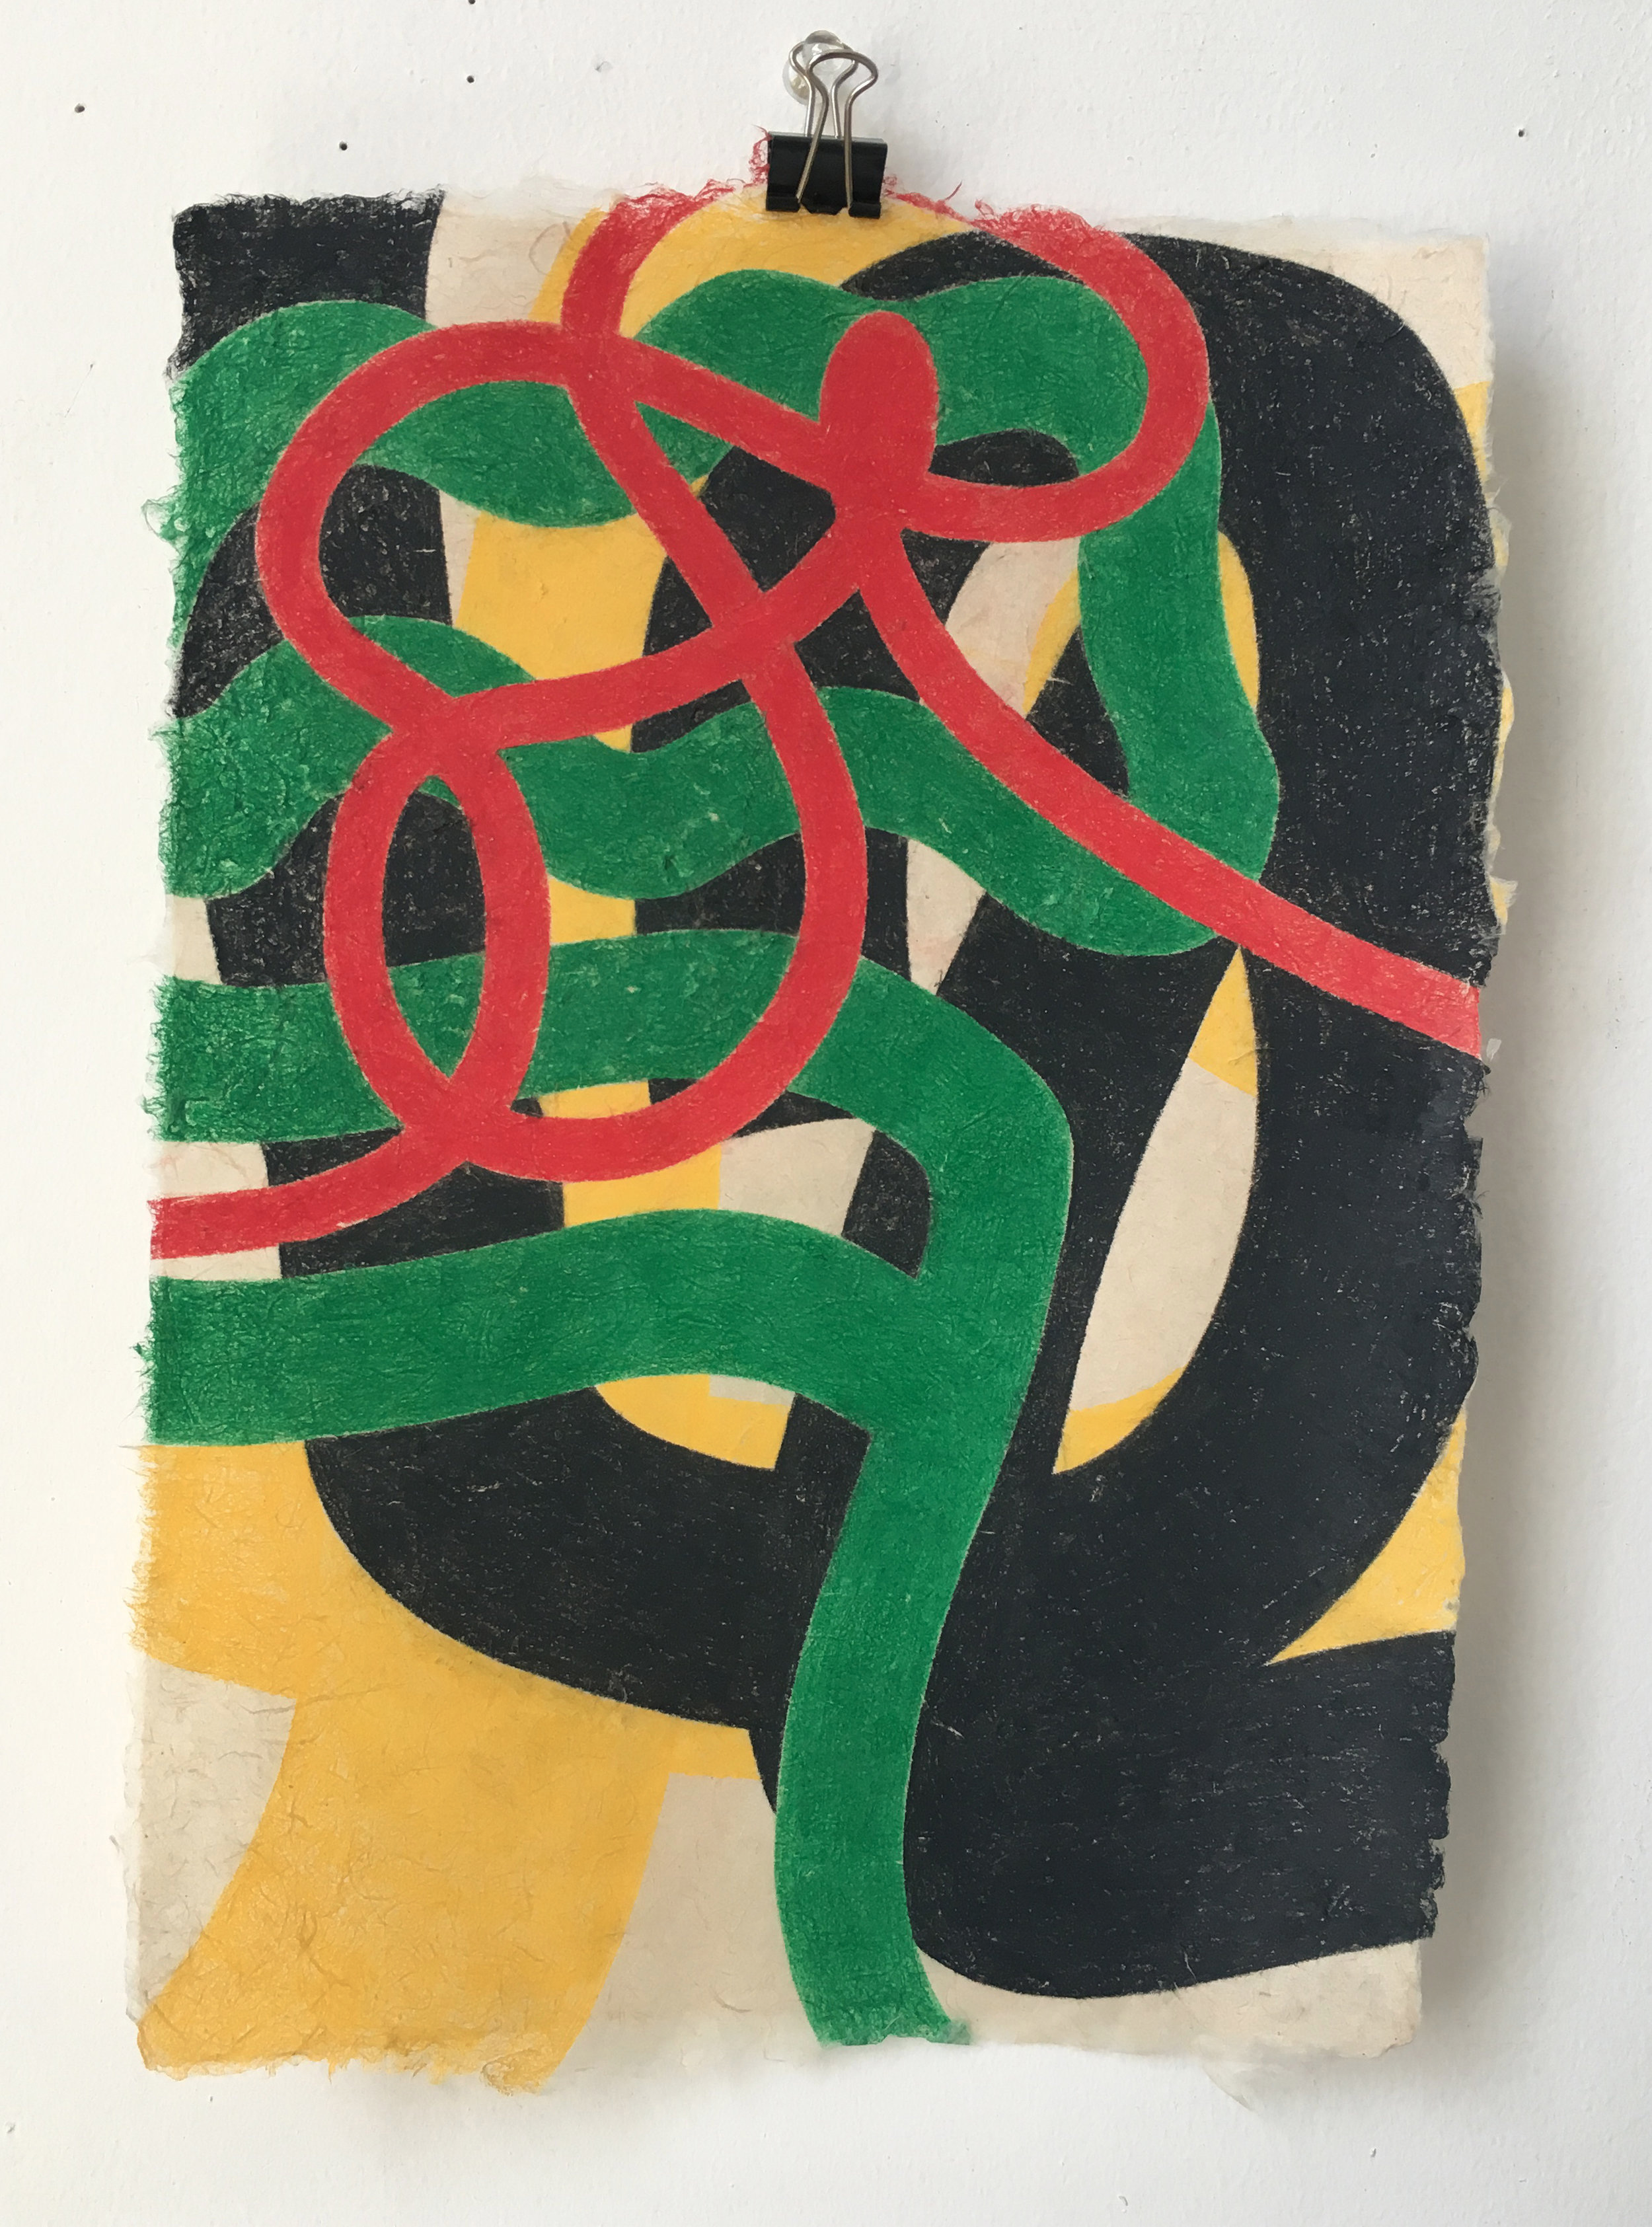 Untitled (Red, Green, Black and Yellow)